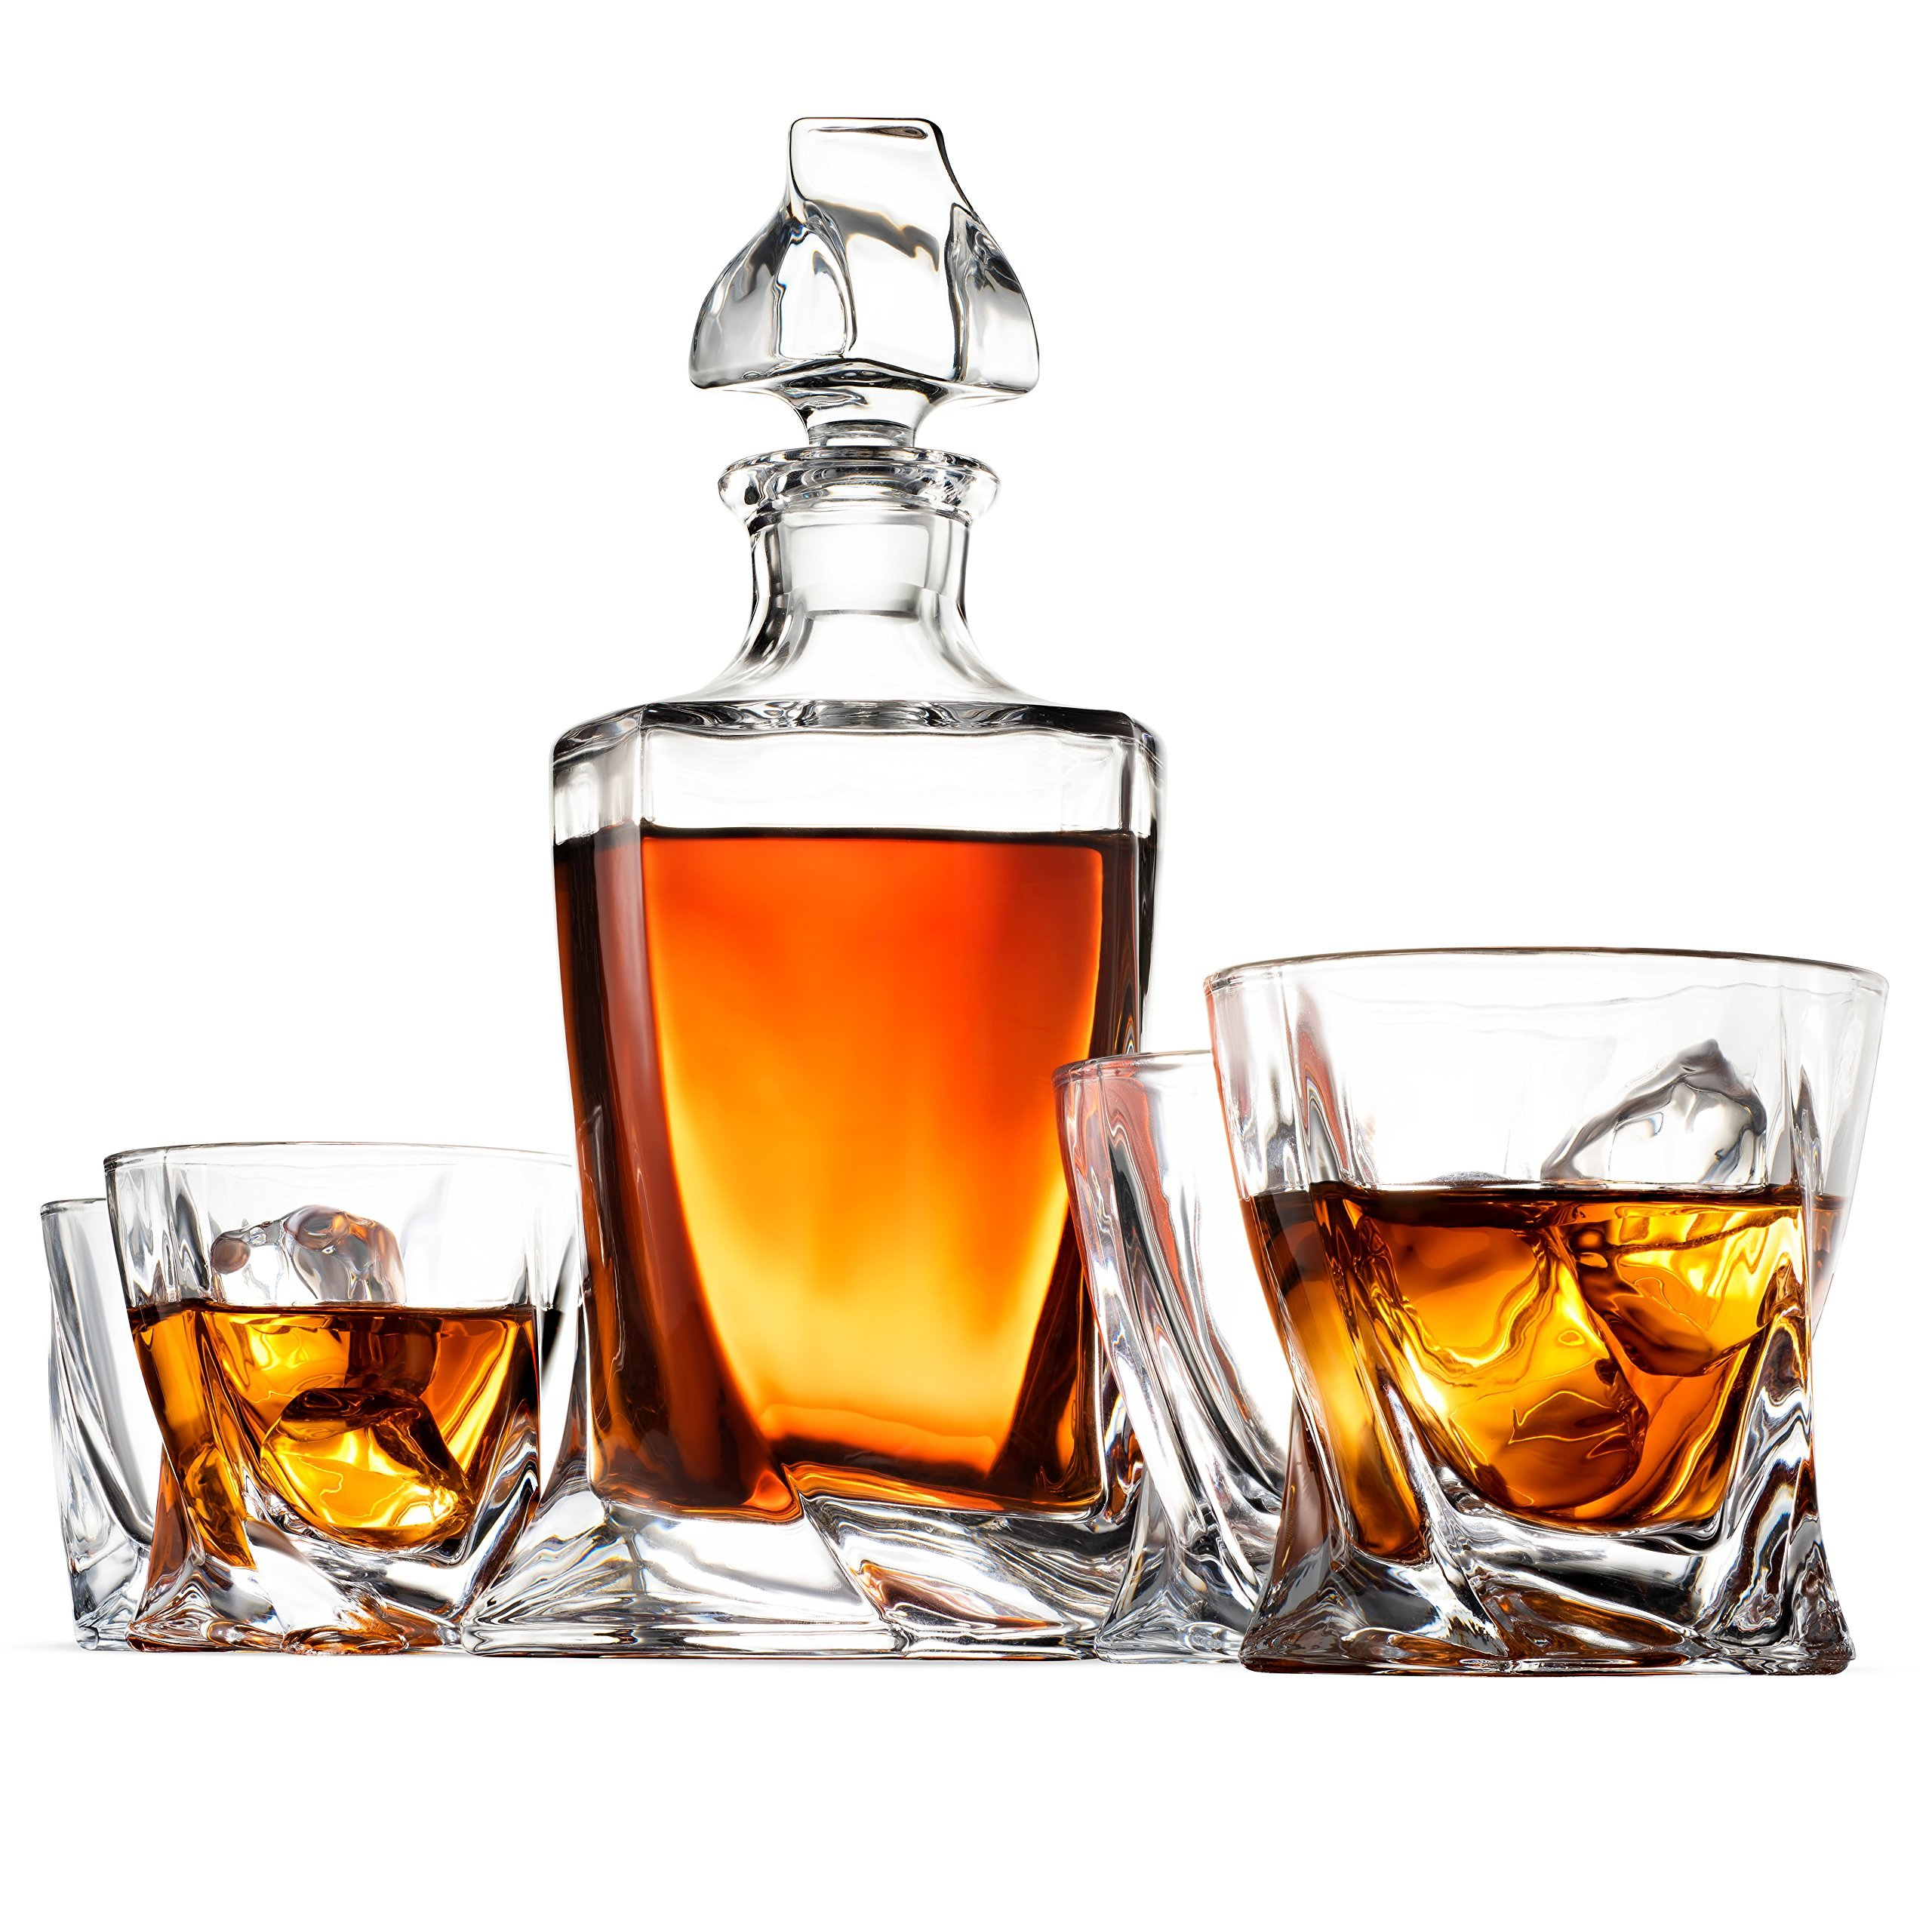 Glass Whiskey Decanter Set - High-End 5-Piece Whiskey Decanter Set, Weighted Bottom European Design 12 oz whiskey Glasses 100% Lead Free Crystal Clear For Scotch Liquor Bourbon Etc. with Gift Box